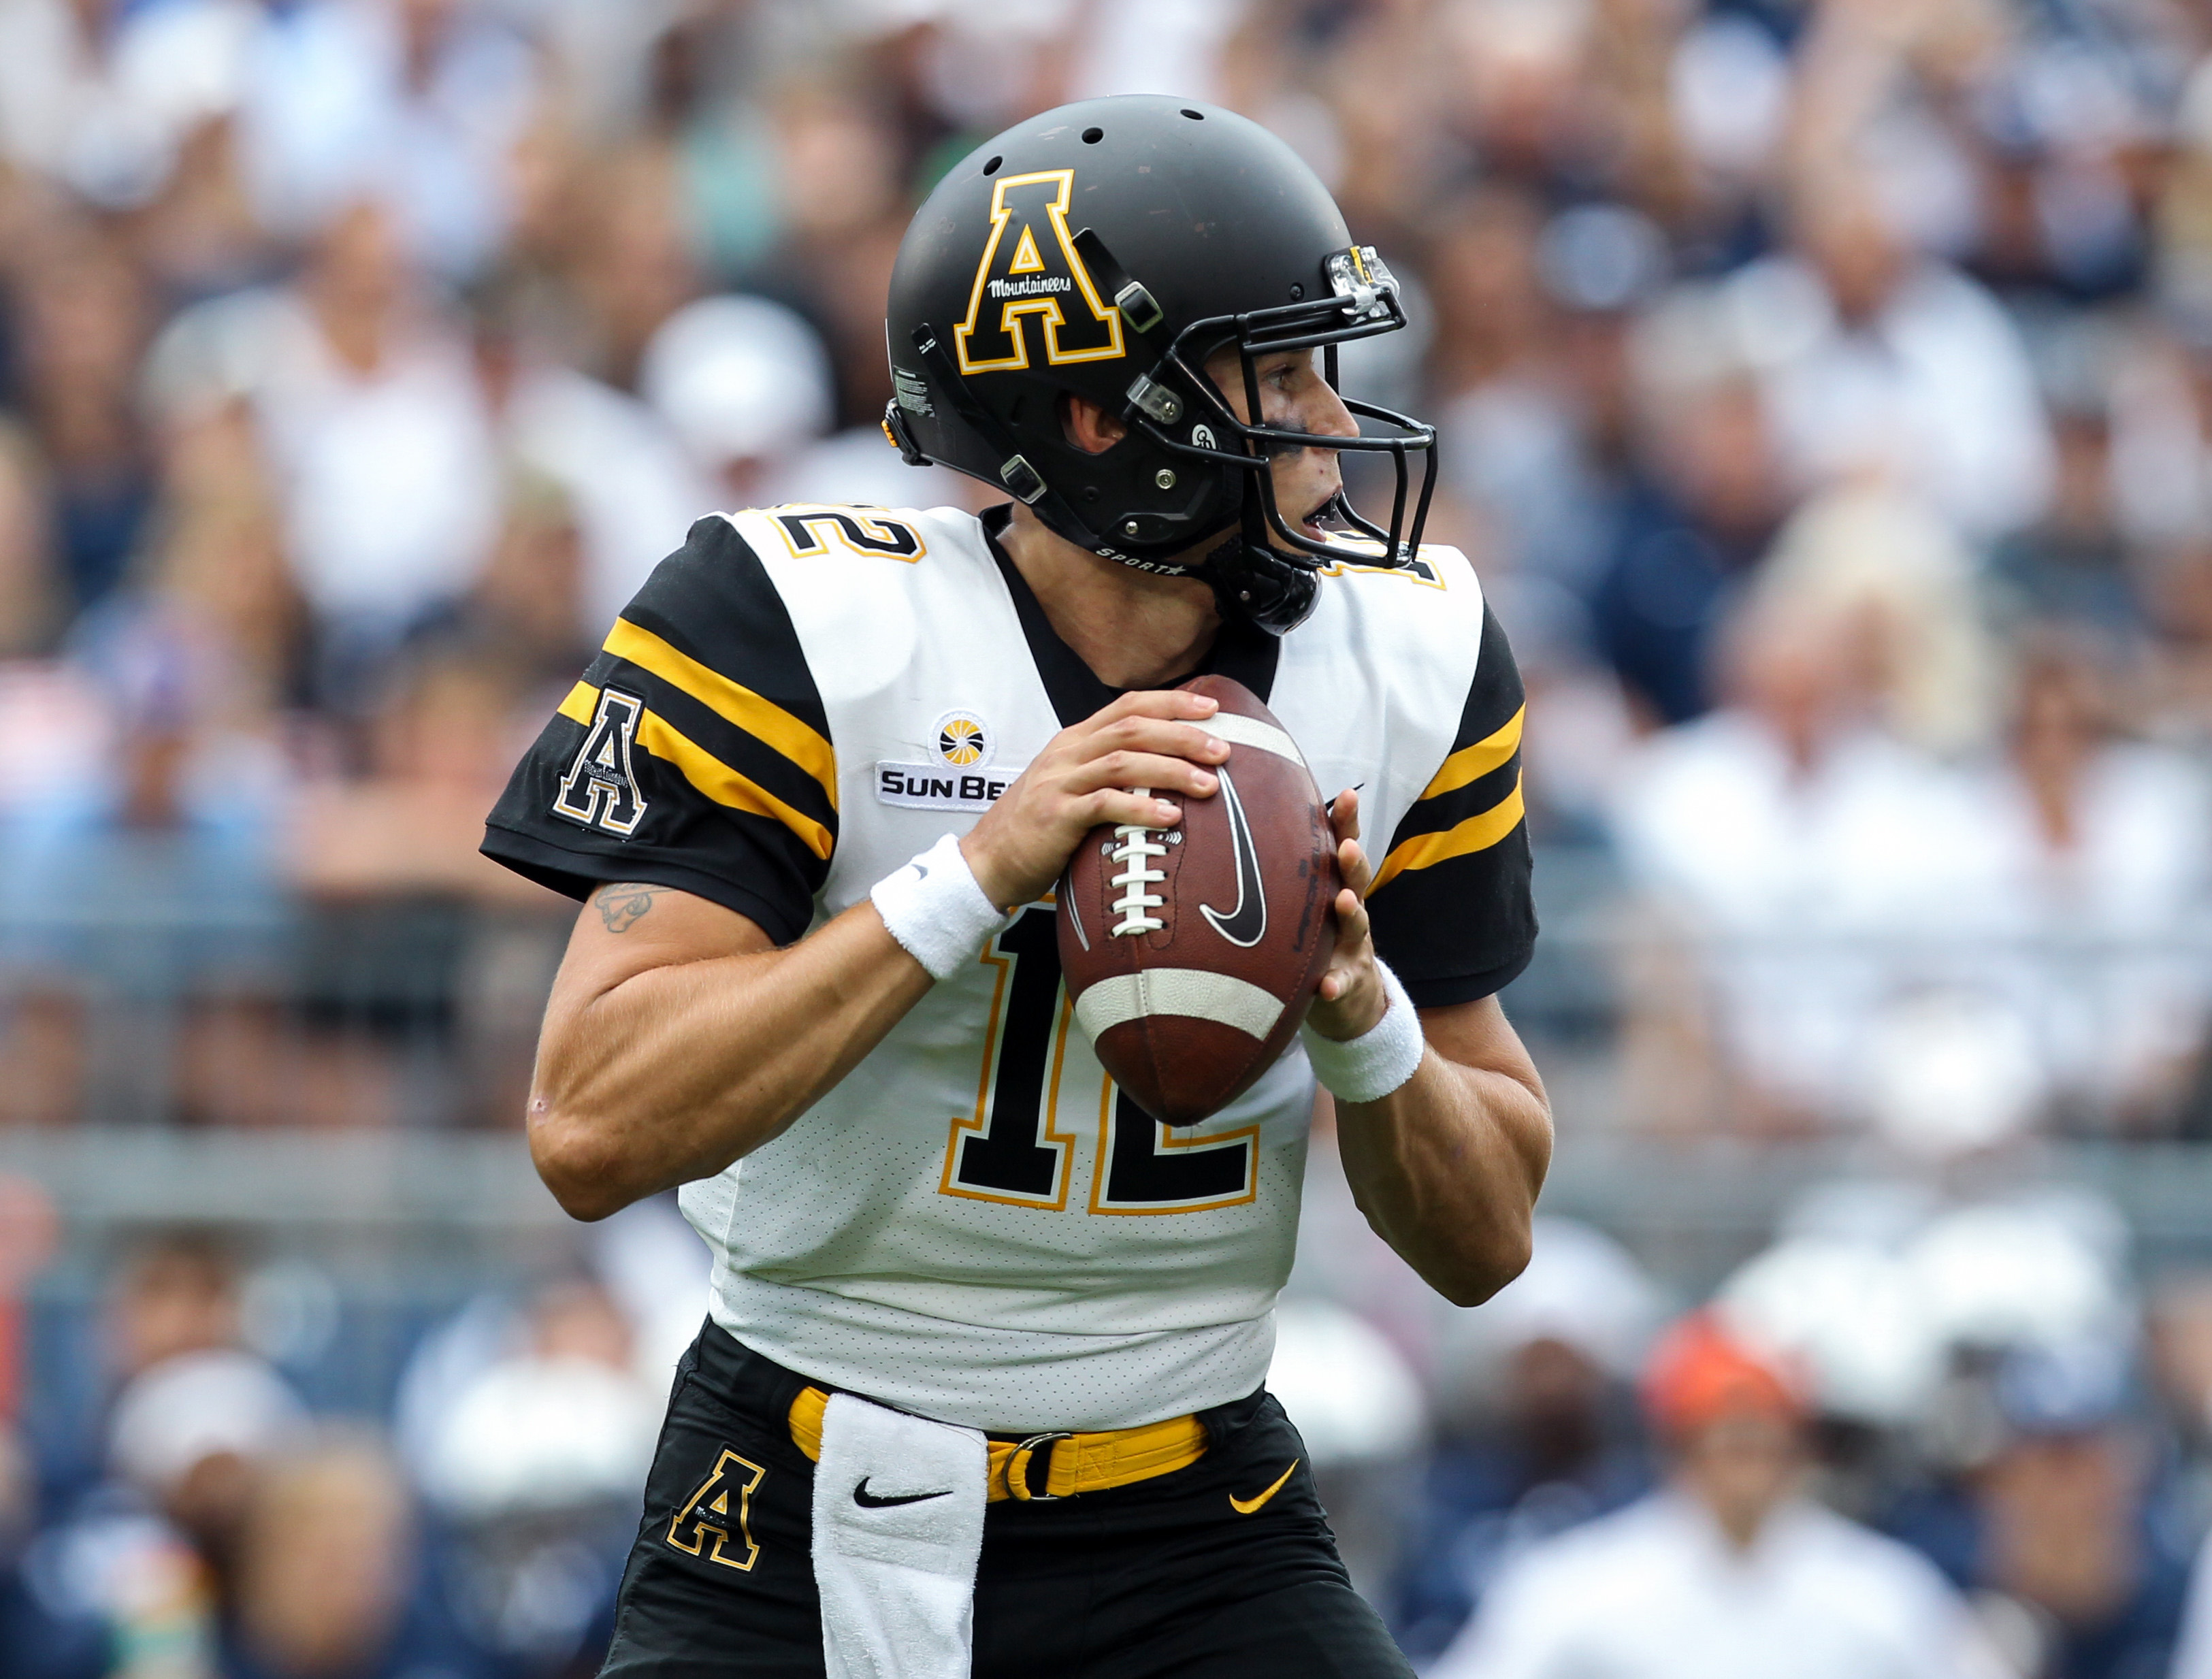 2afb7af4 New Orleans Bowl Preview: Appalachian State vs Middle Tennessee ...